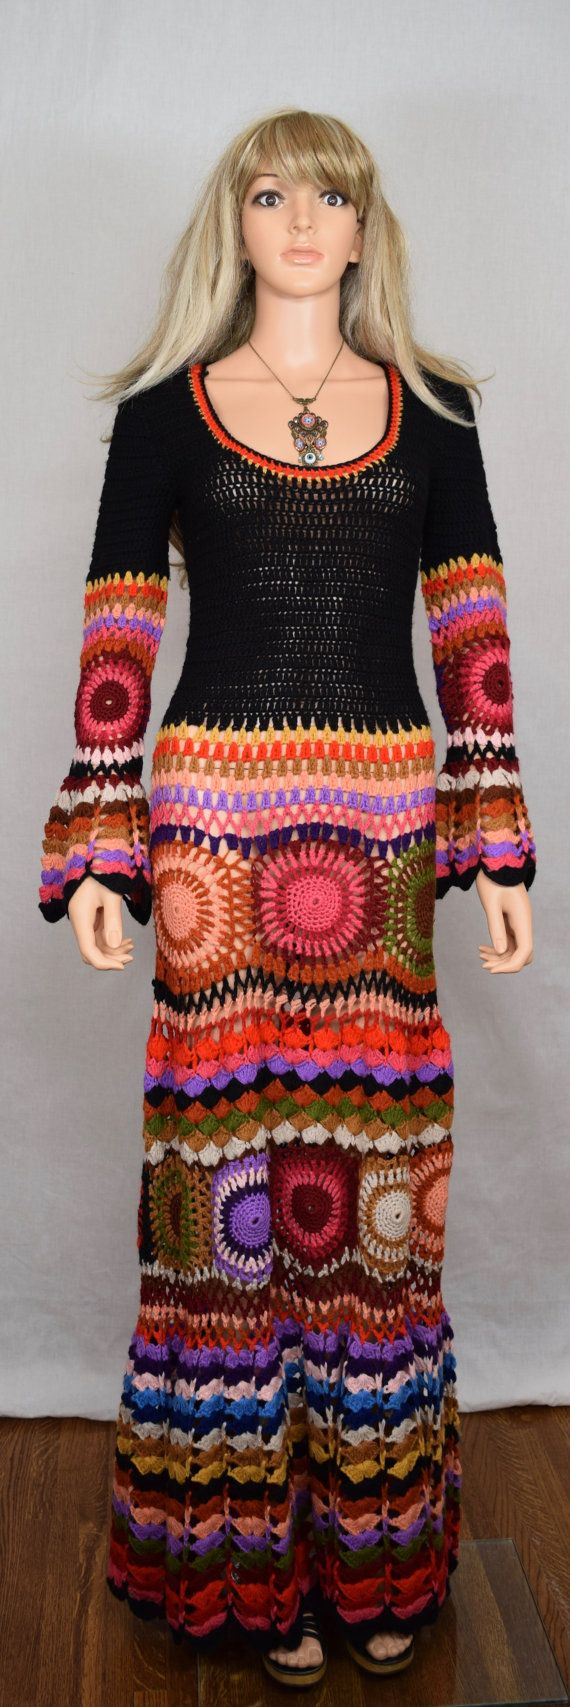 Hey, I found this really awesome Etsy listing at https://www.etsy.com/listing/250545070/vintage-1960s-70s-womens-crocheted